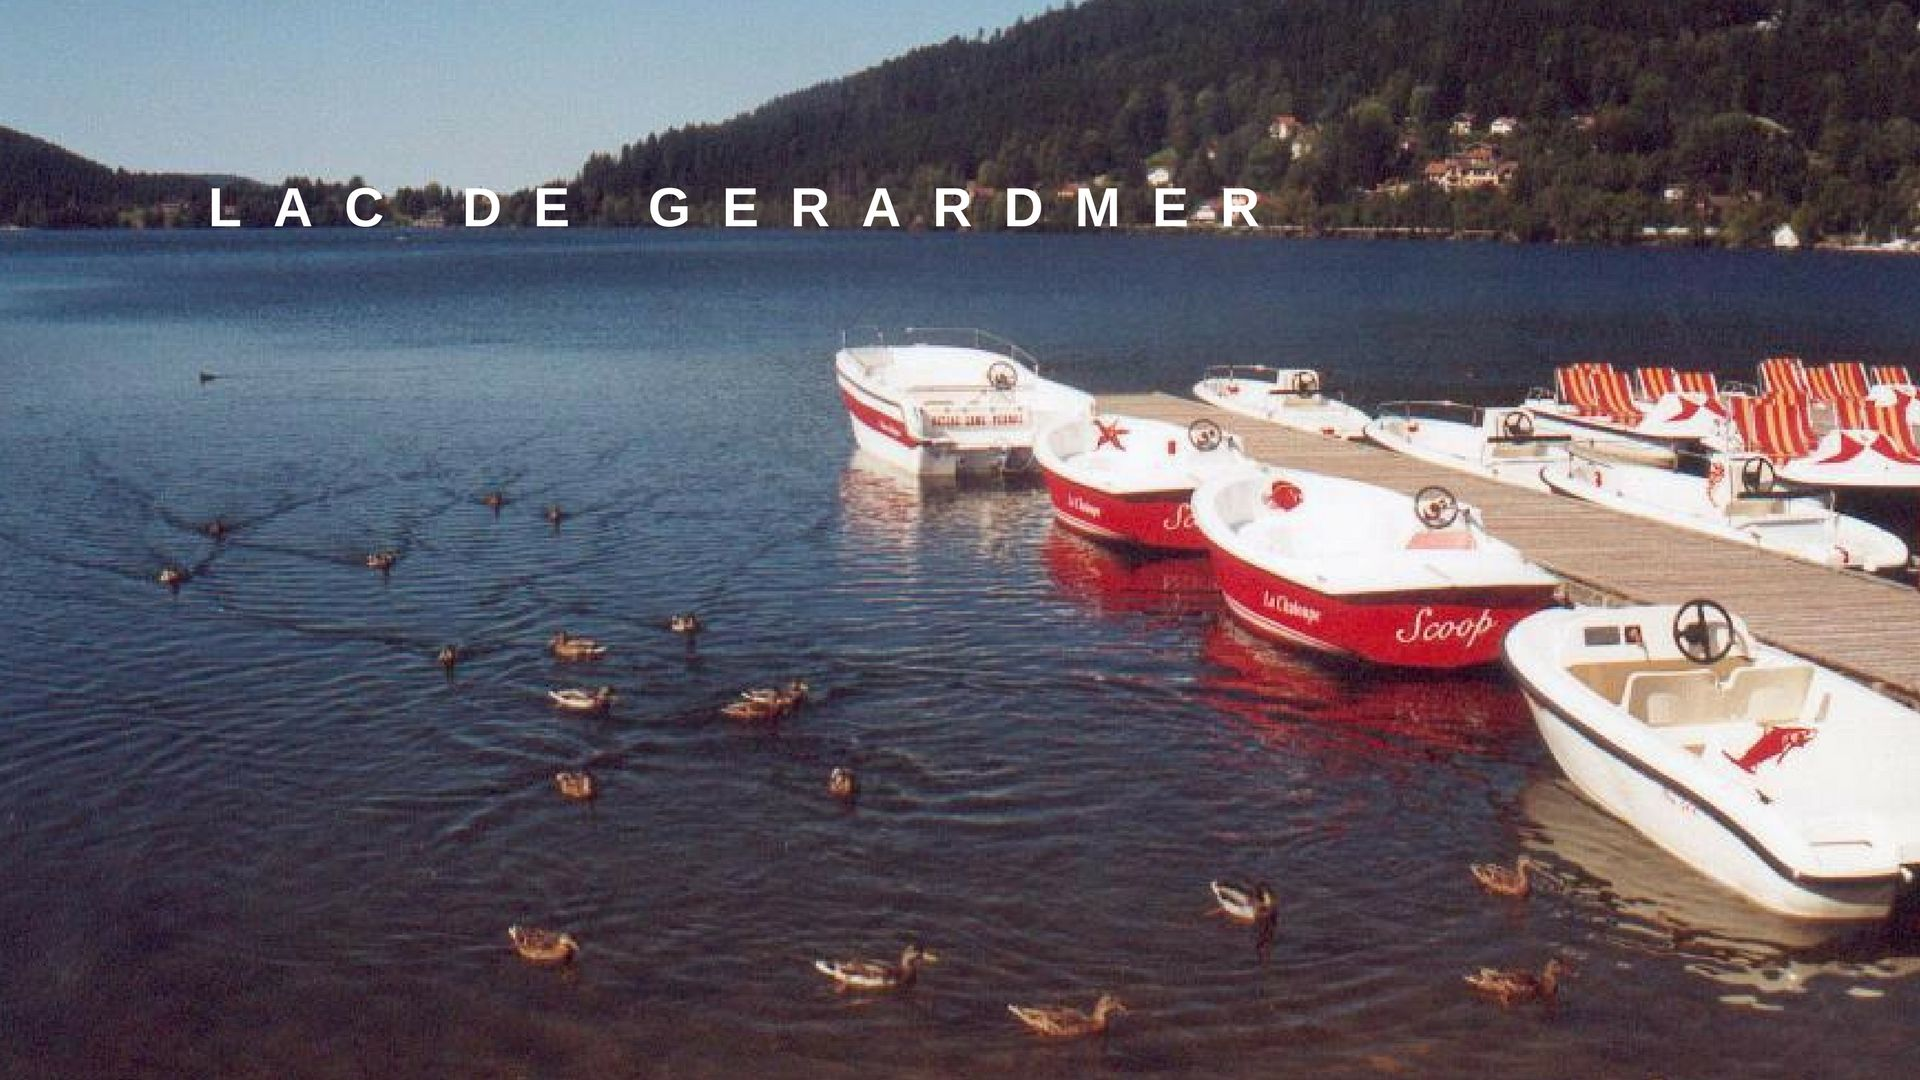 Gérardmer lake  electric boat